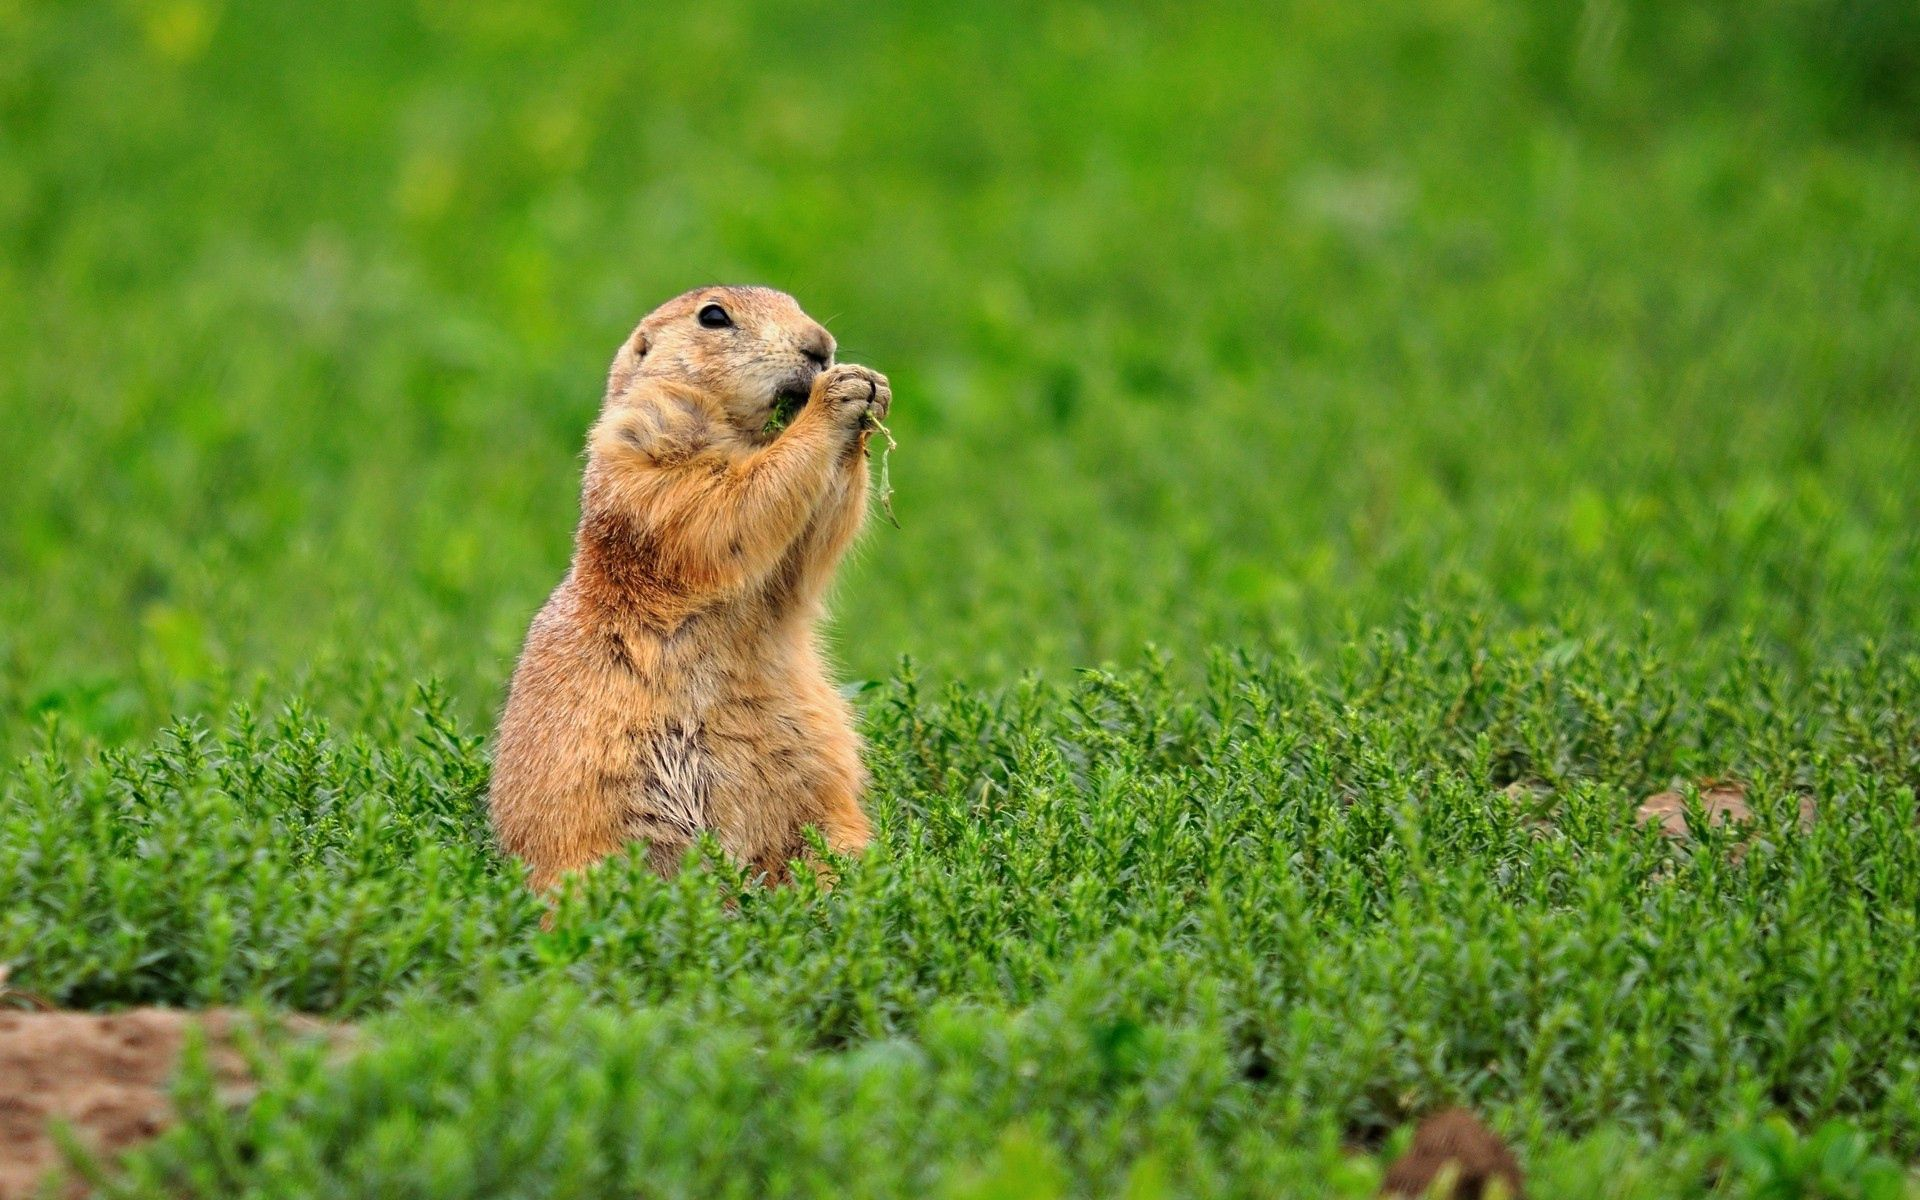 122772 download wallpaper Animals, Rodent, Gopher, Chipmunk, Grass screensavers and pictures for free